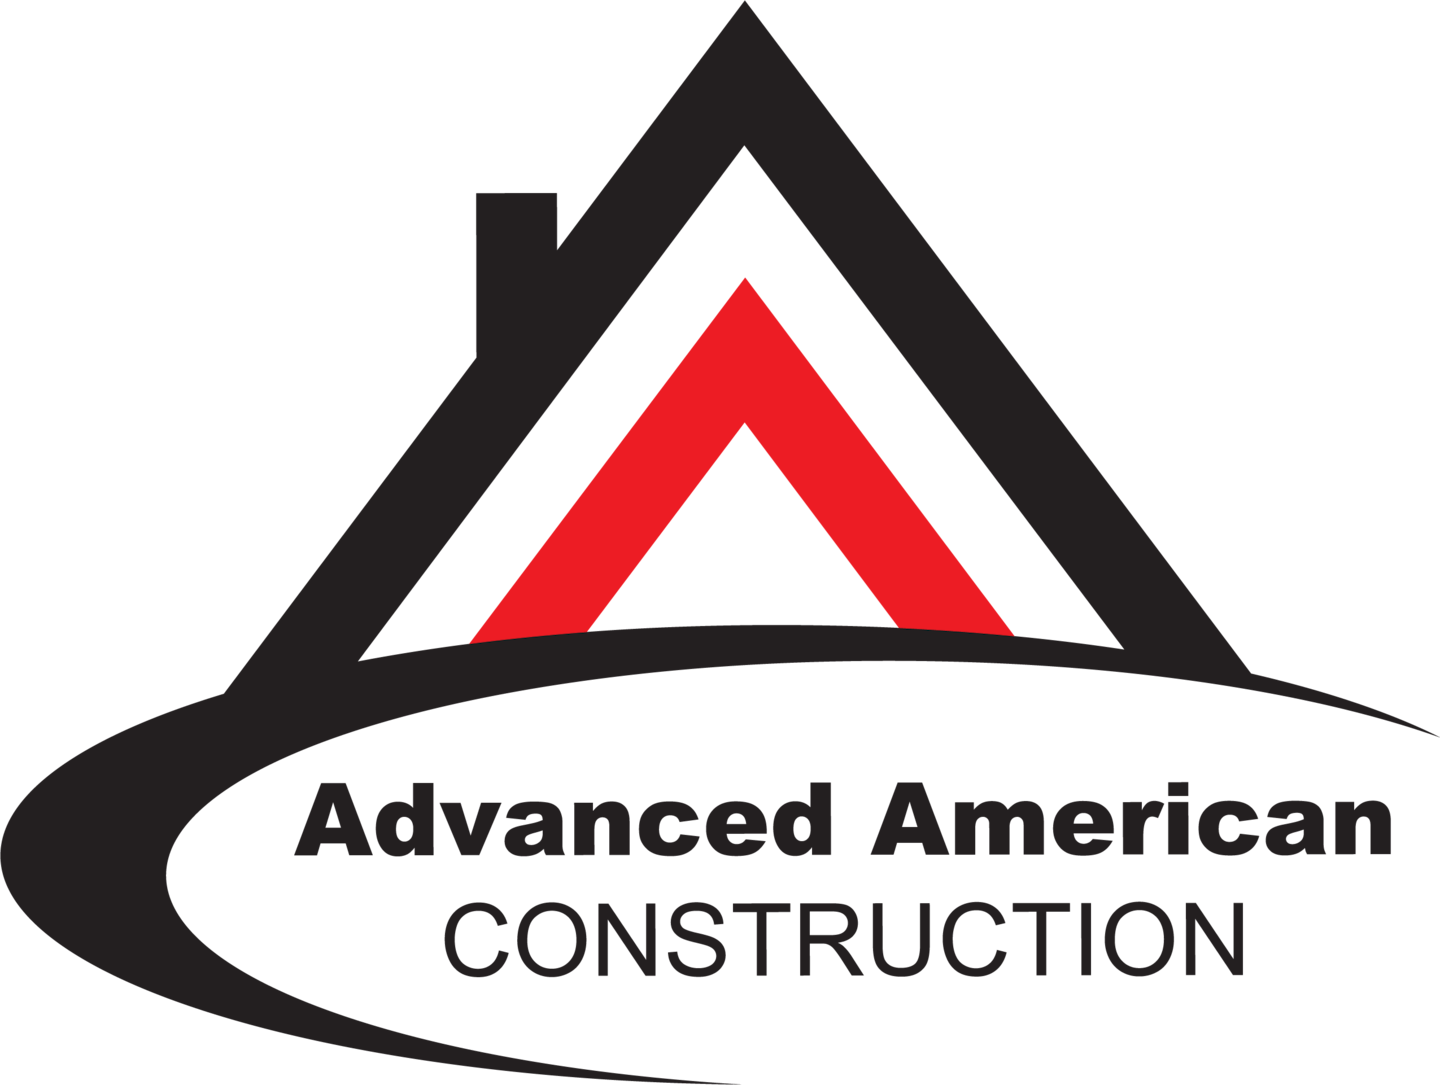 Advanced American Construction Inc.